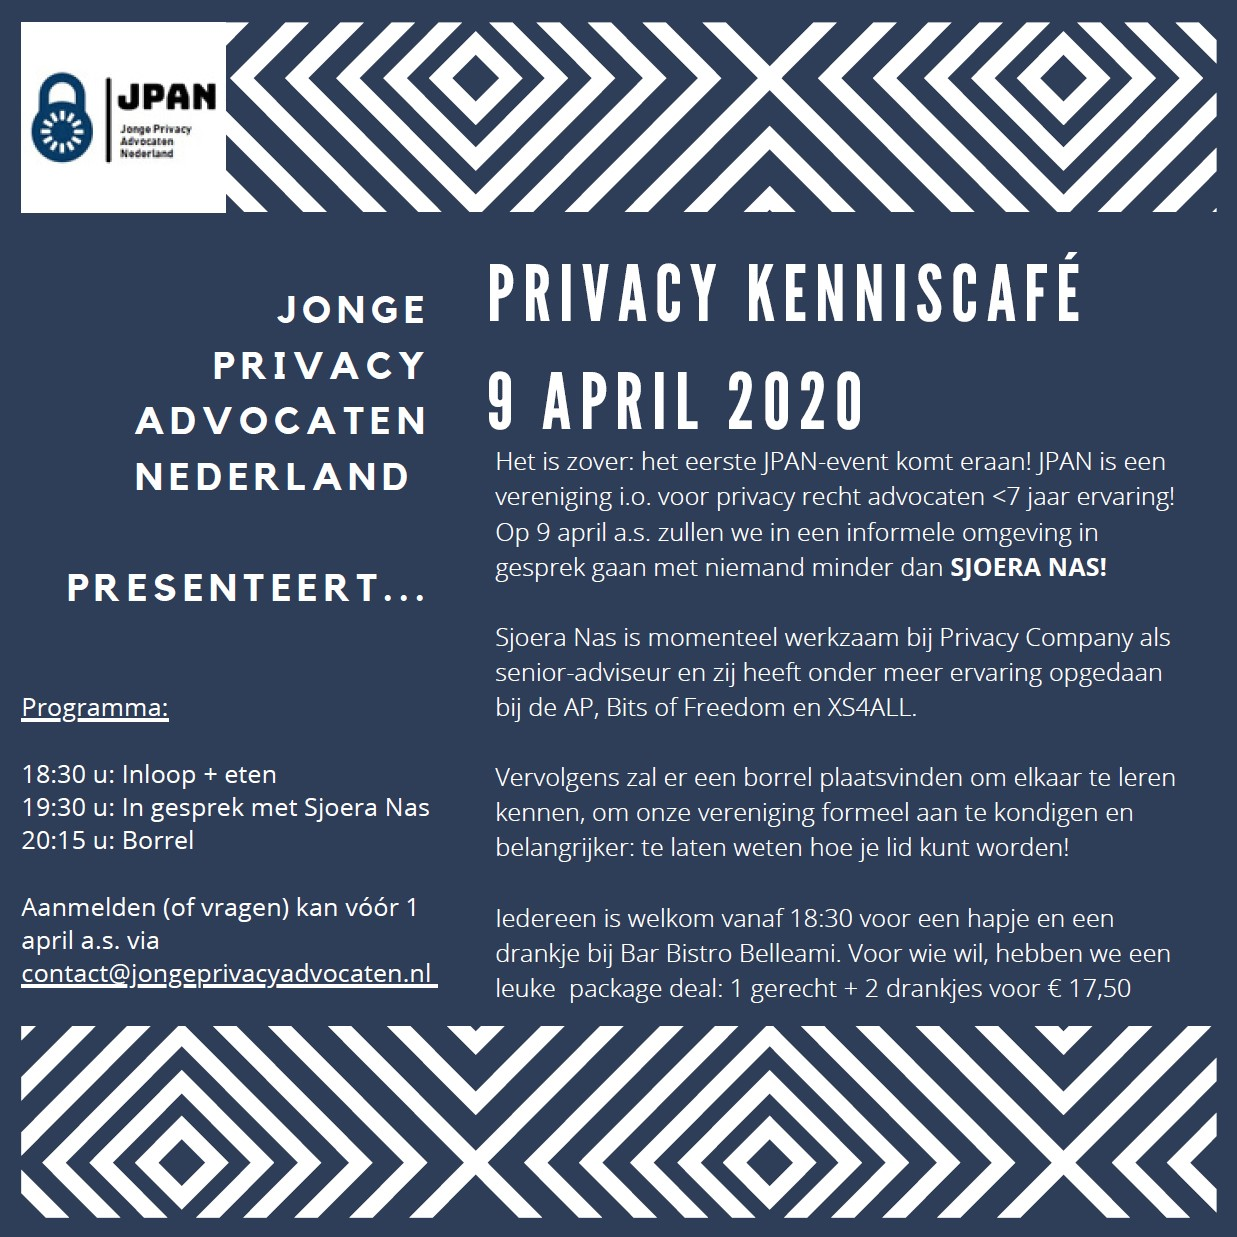 privacy kenniscafe